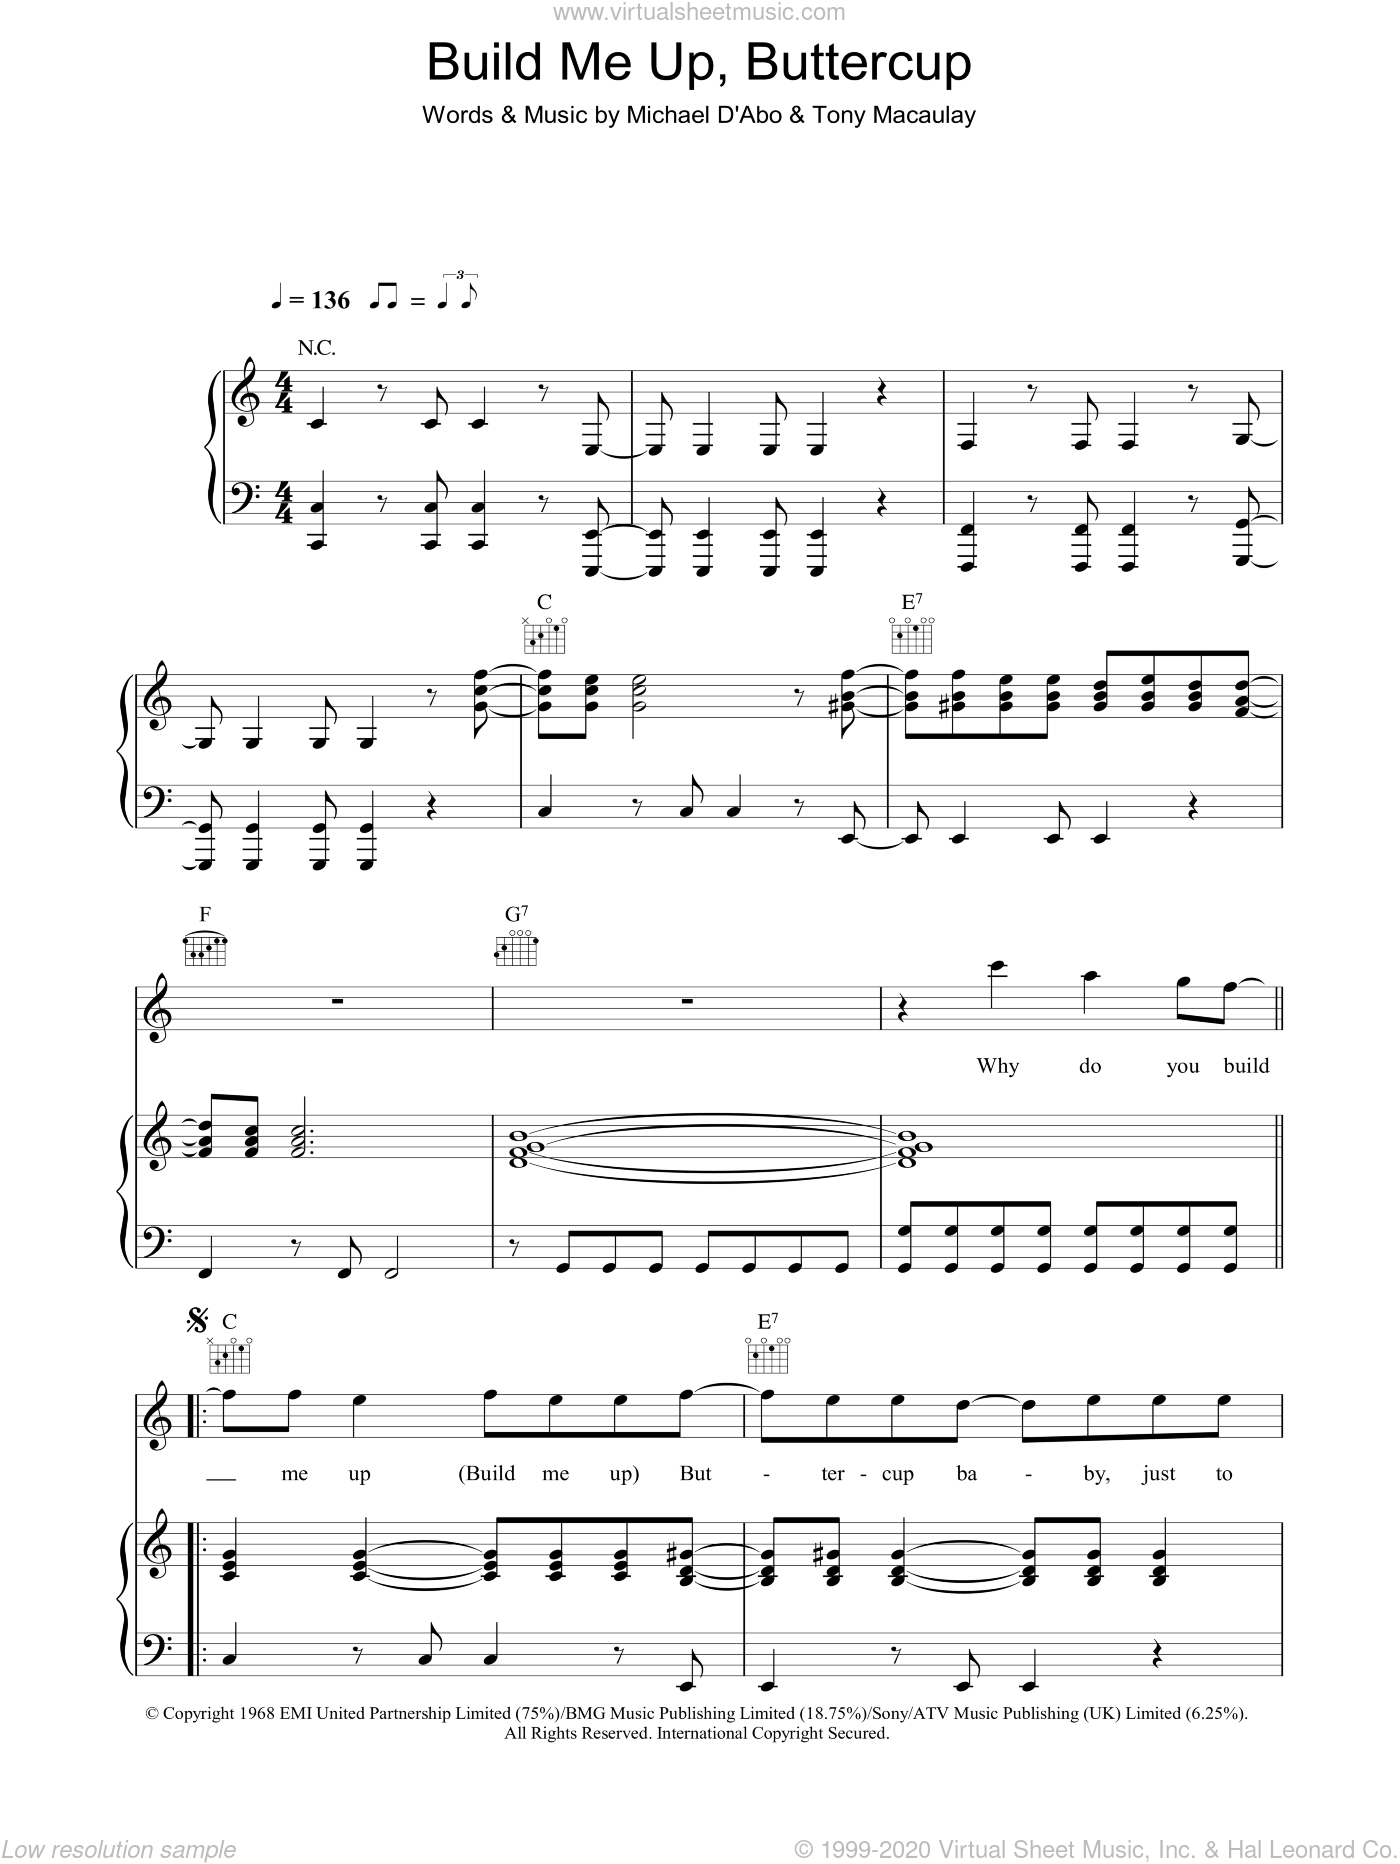 Build Me Up, Buttercup sheet music for voice, piano or guitar by Tony Macaulay